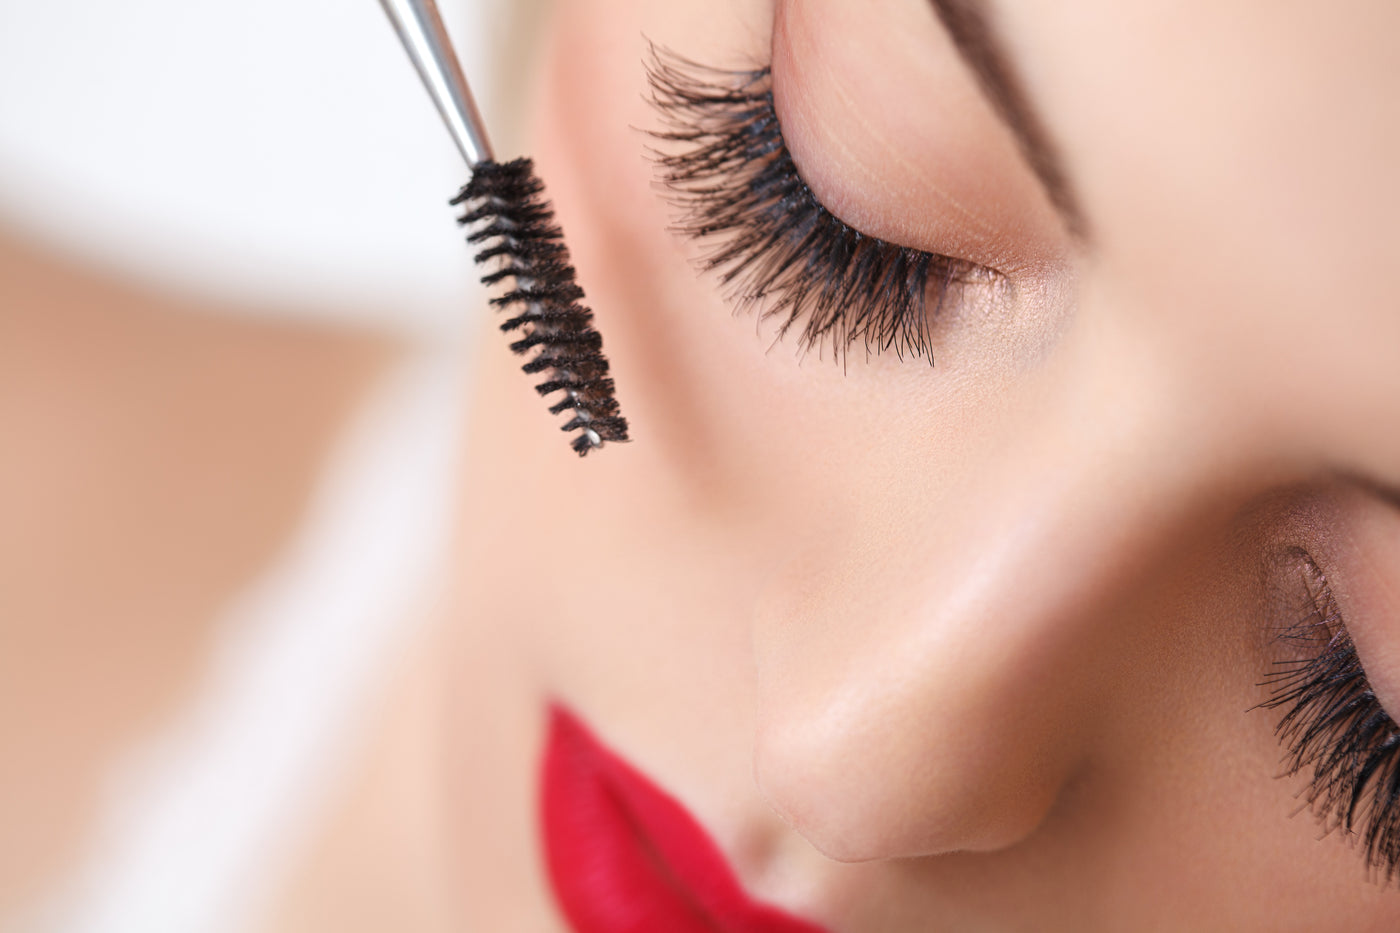 SPOTLIGHT: FINDING THE PERFECT ALL-NATURAL MASCARA